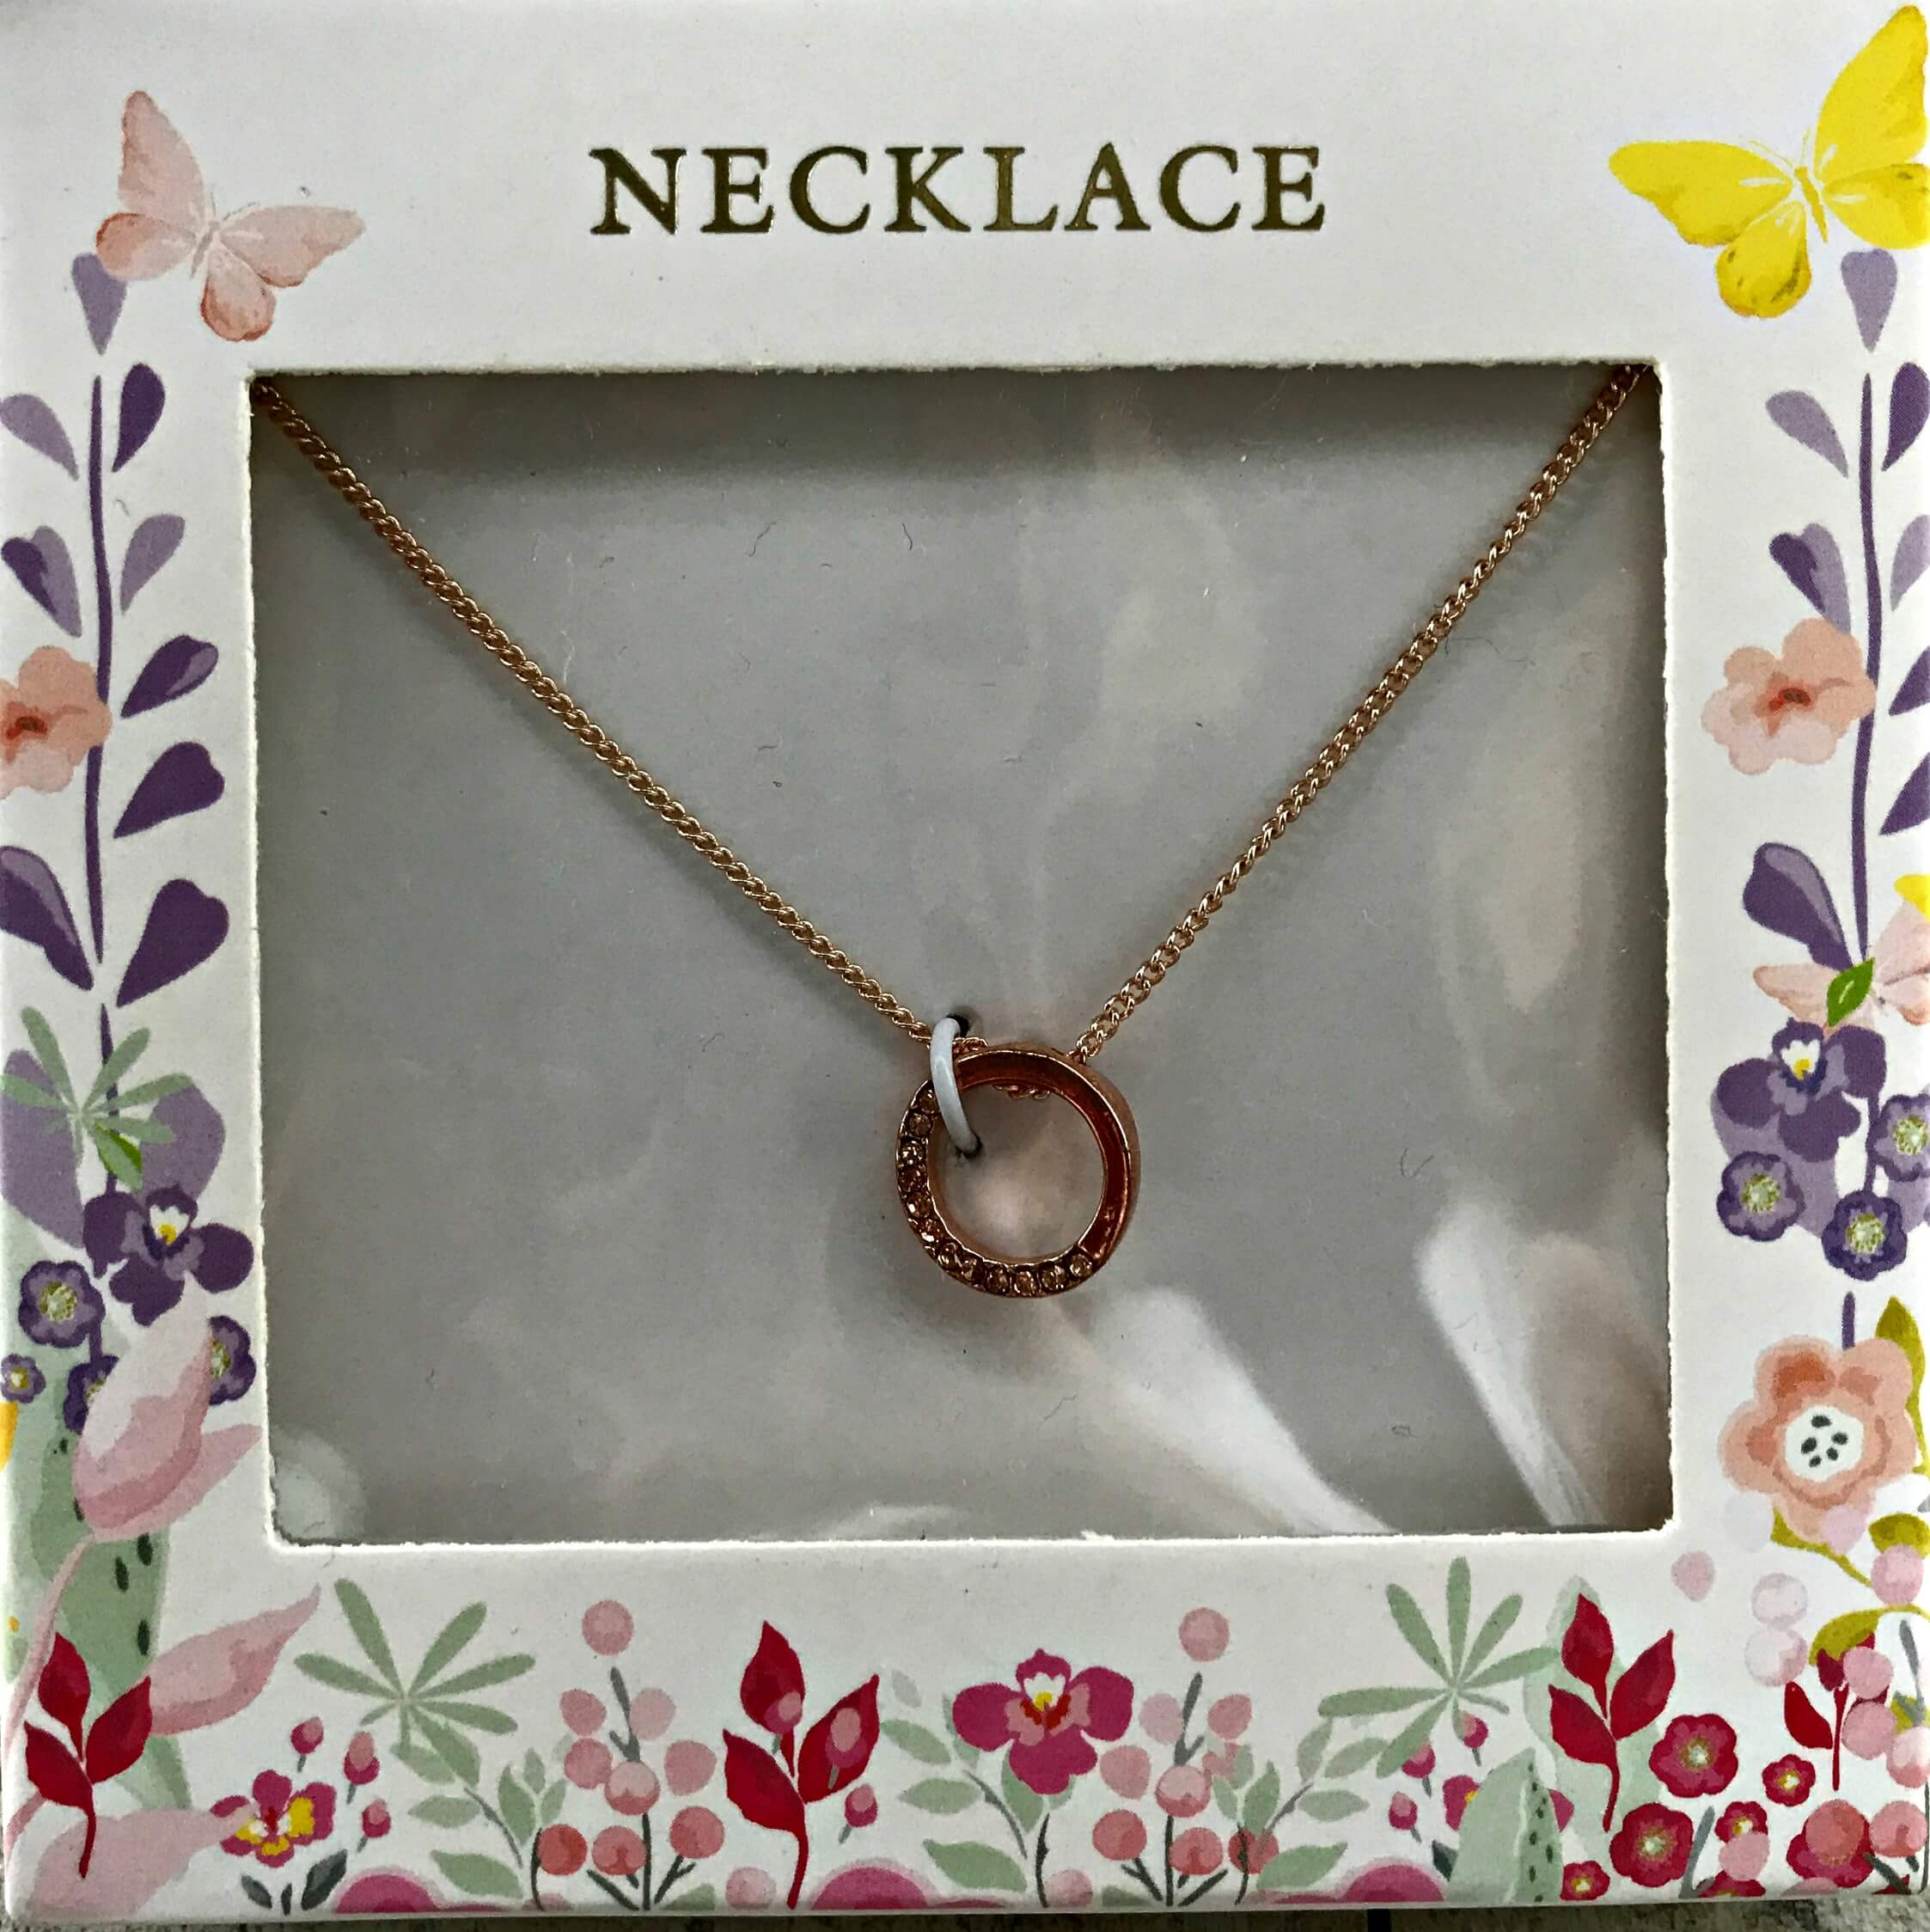 Mother's Day gifts on a budget - Home Bargains Summer Meadows necklace